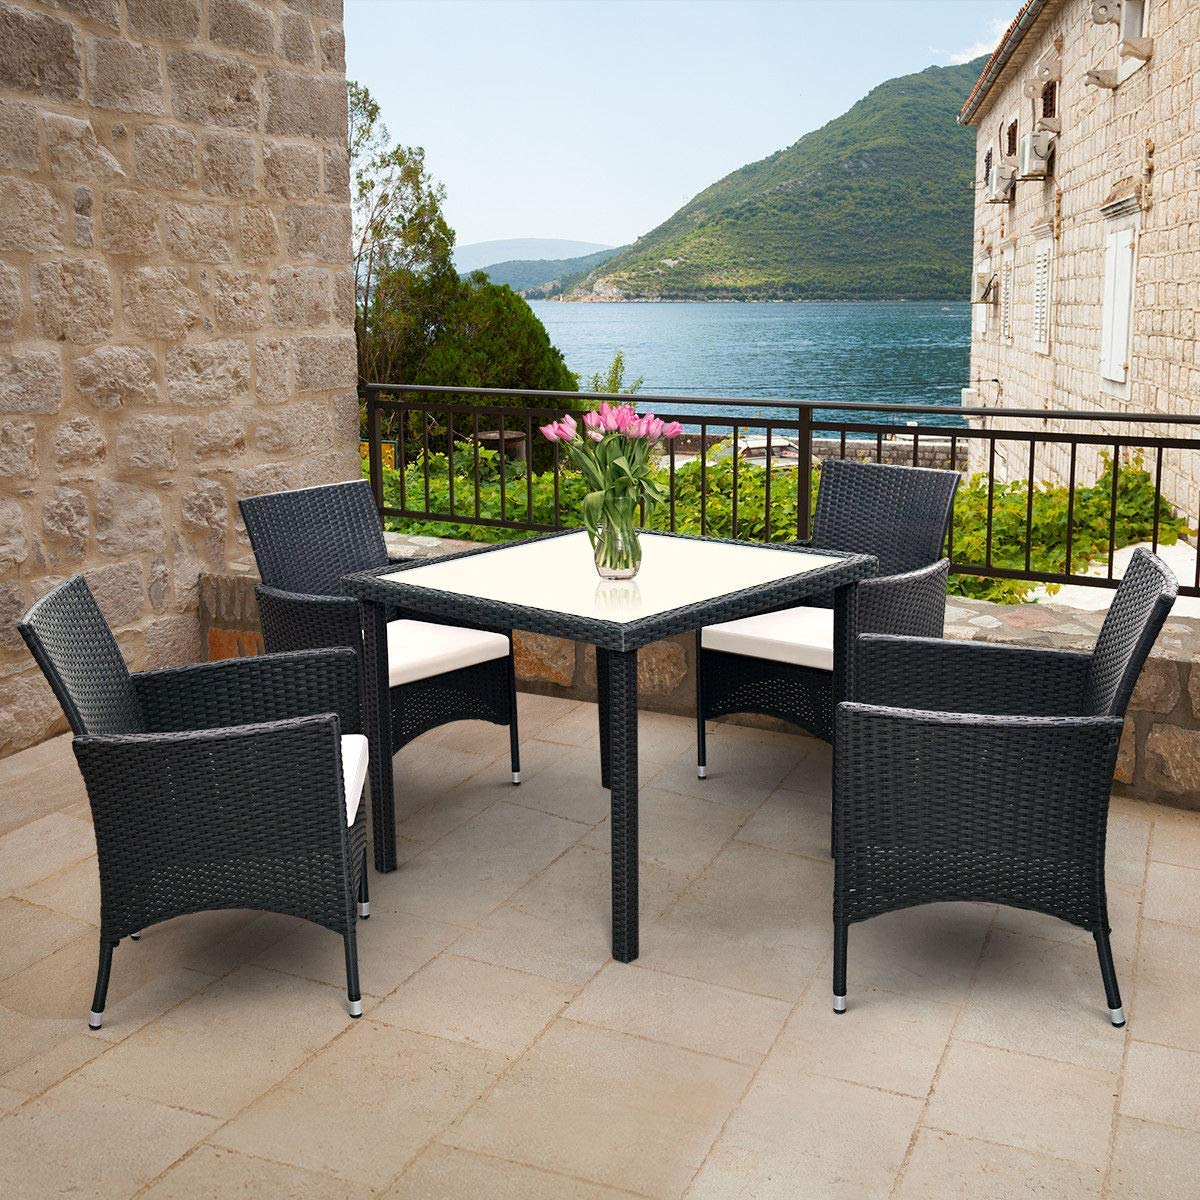 6ca29837c Tangkula 5PCS Patio Wicker Dining Set Outdoor Lawn Garden Wicker Rattan  Table and 4 Chairs Sofa Furniture Set Cushioned Seat Conversation Set with  Removable ...